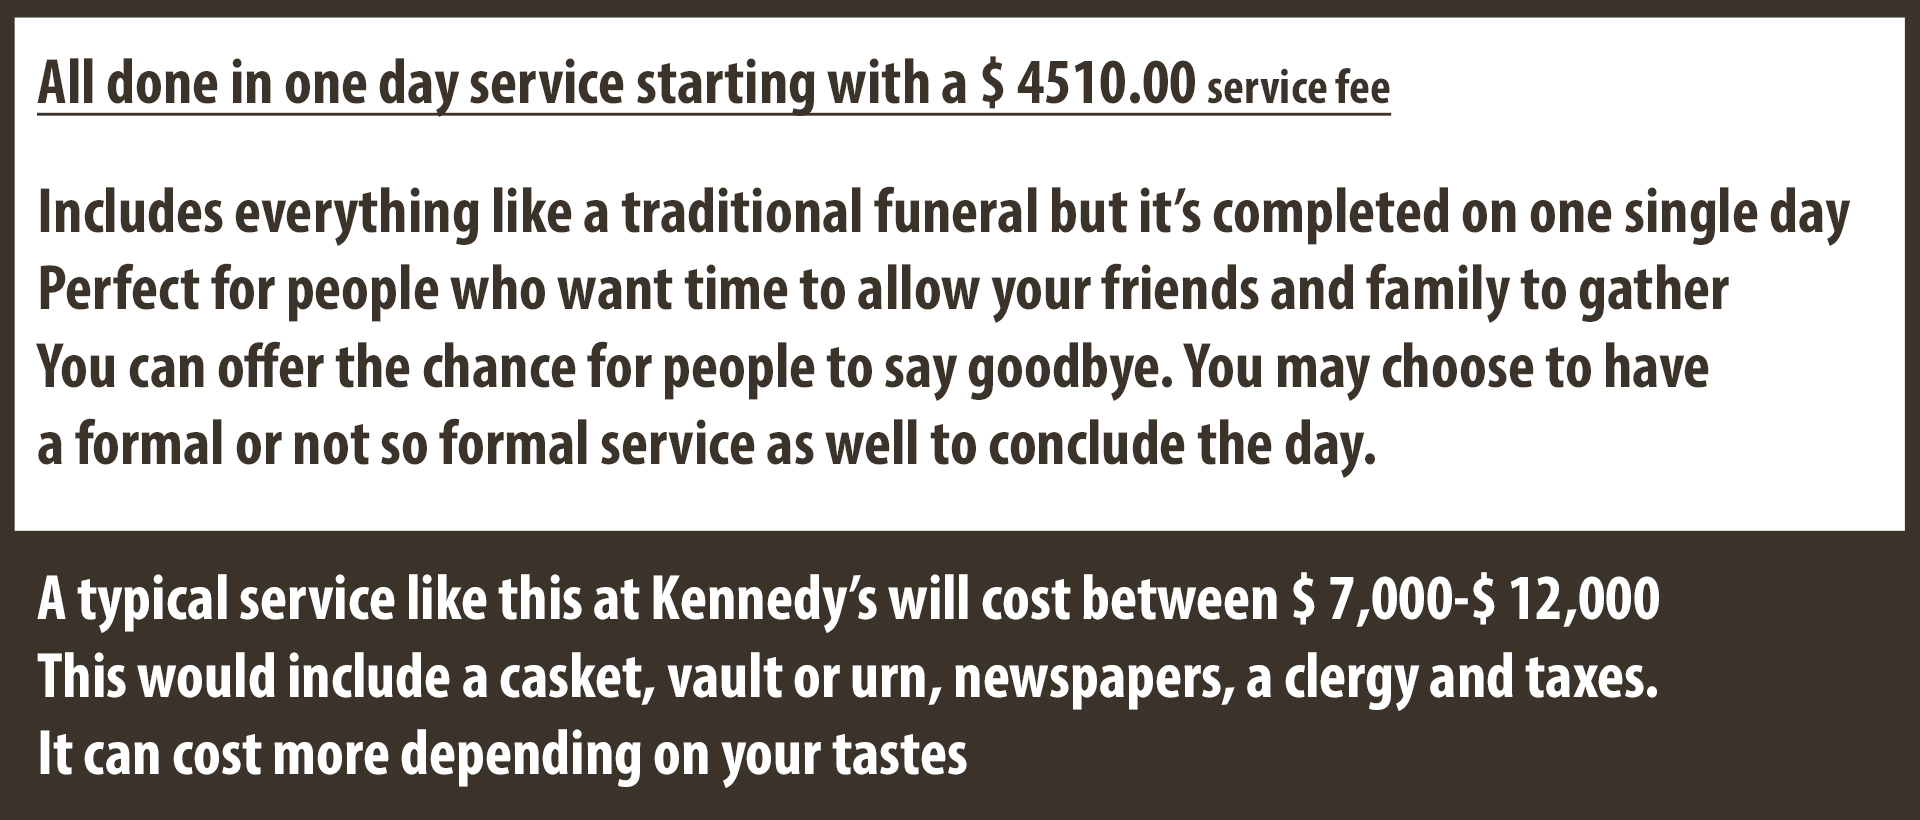 A funeral home in Essex providing funeral and basic cremation services.